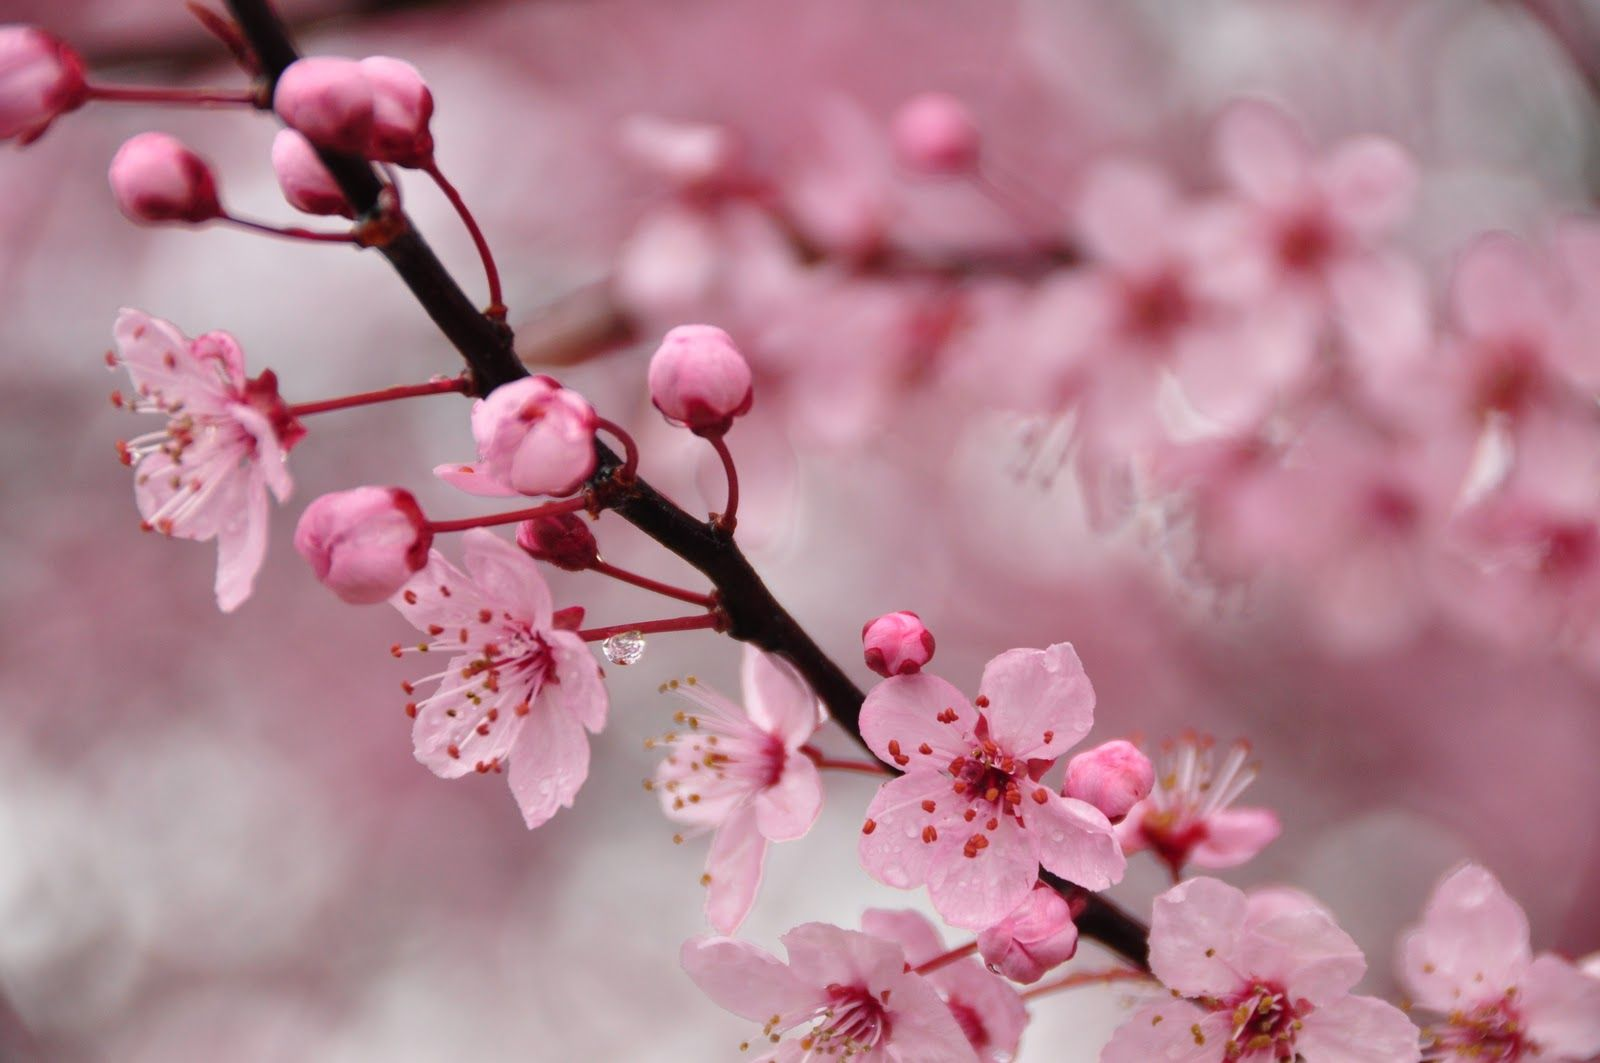 Cherry Blossom Images The Vintage Perfume Vault Scented Wanderings Perfumes Of Tomorro Cherry Blossom Flowers Cherry Blossom Pictures Cherry Blossom Images